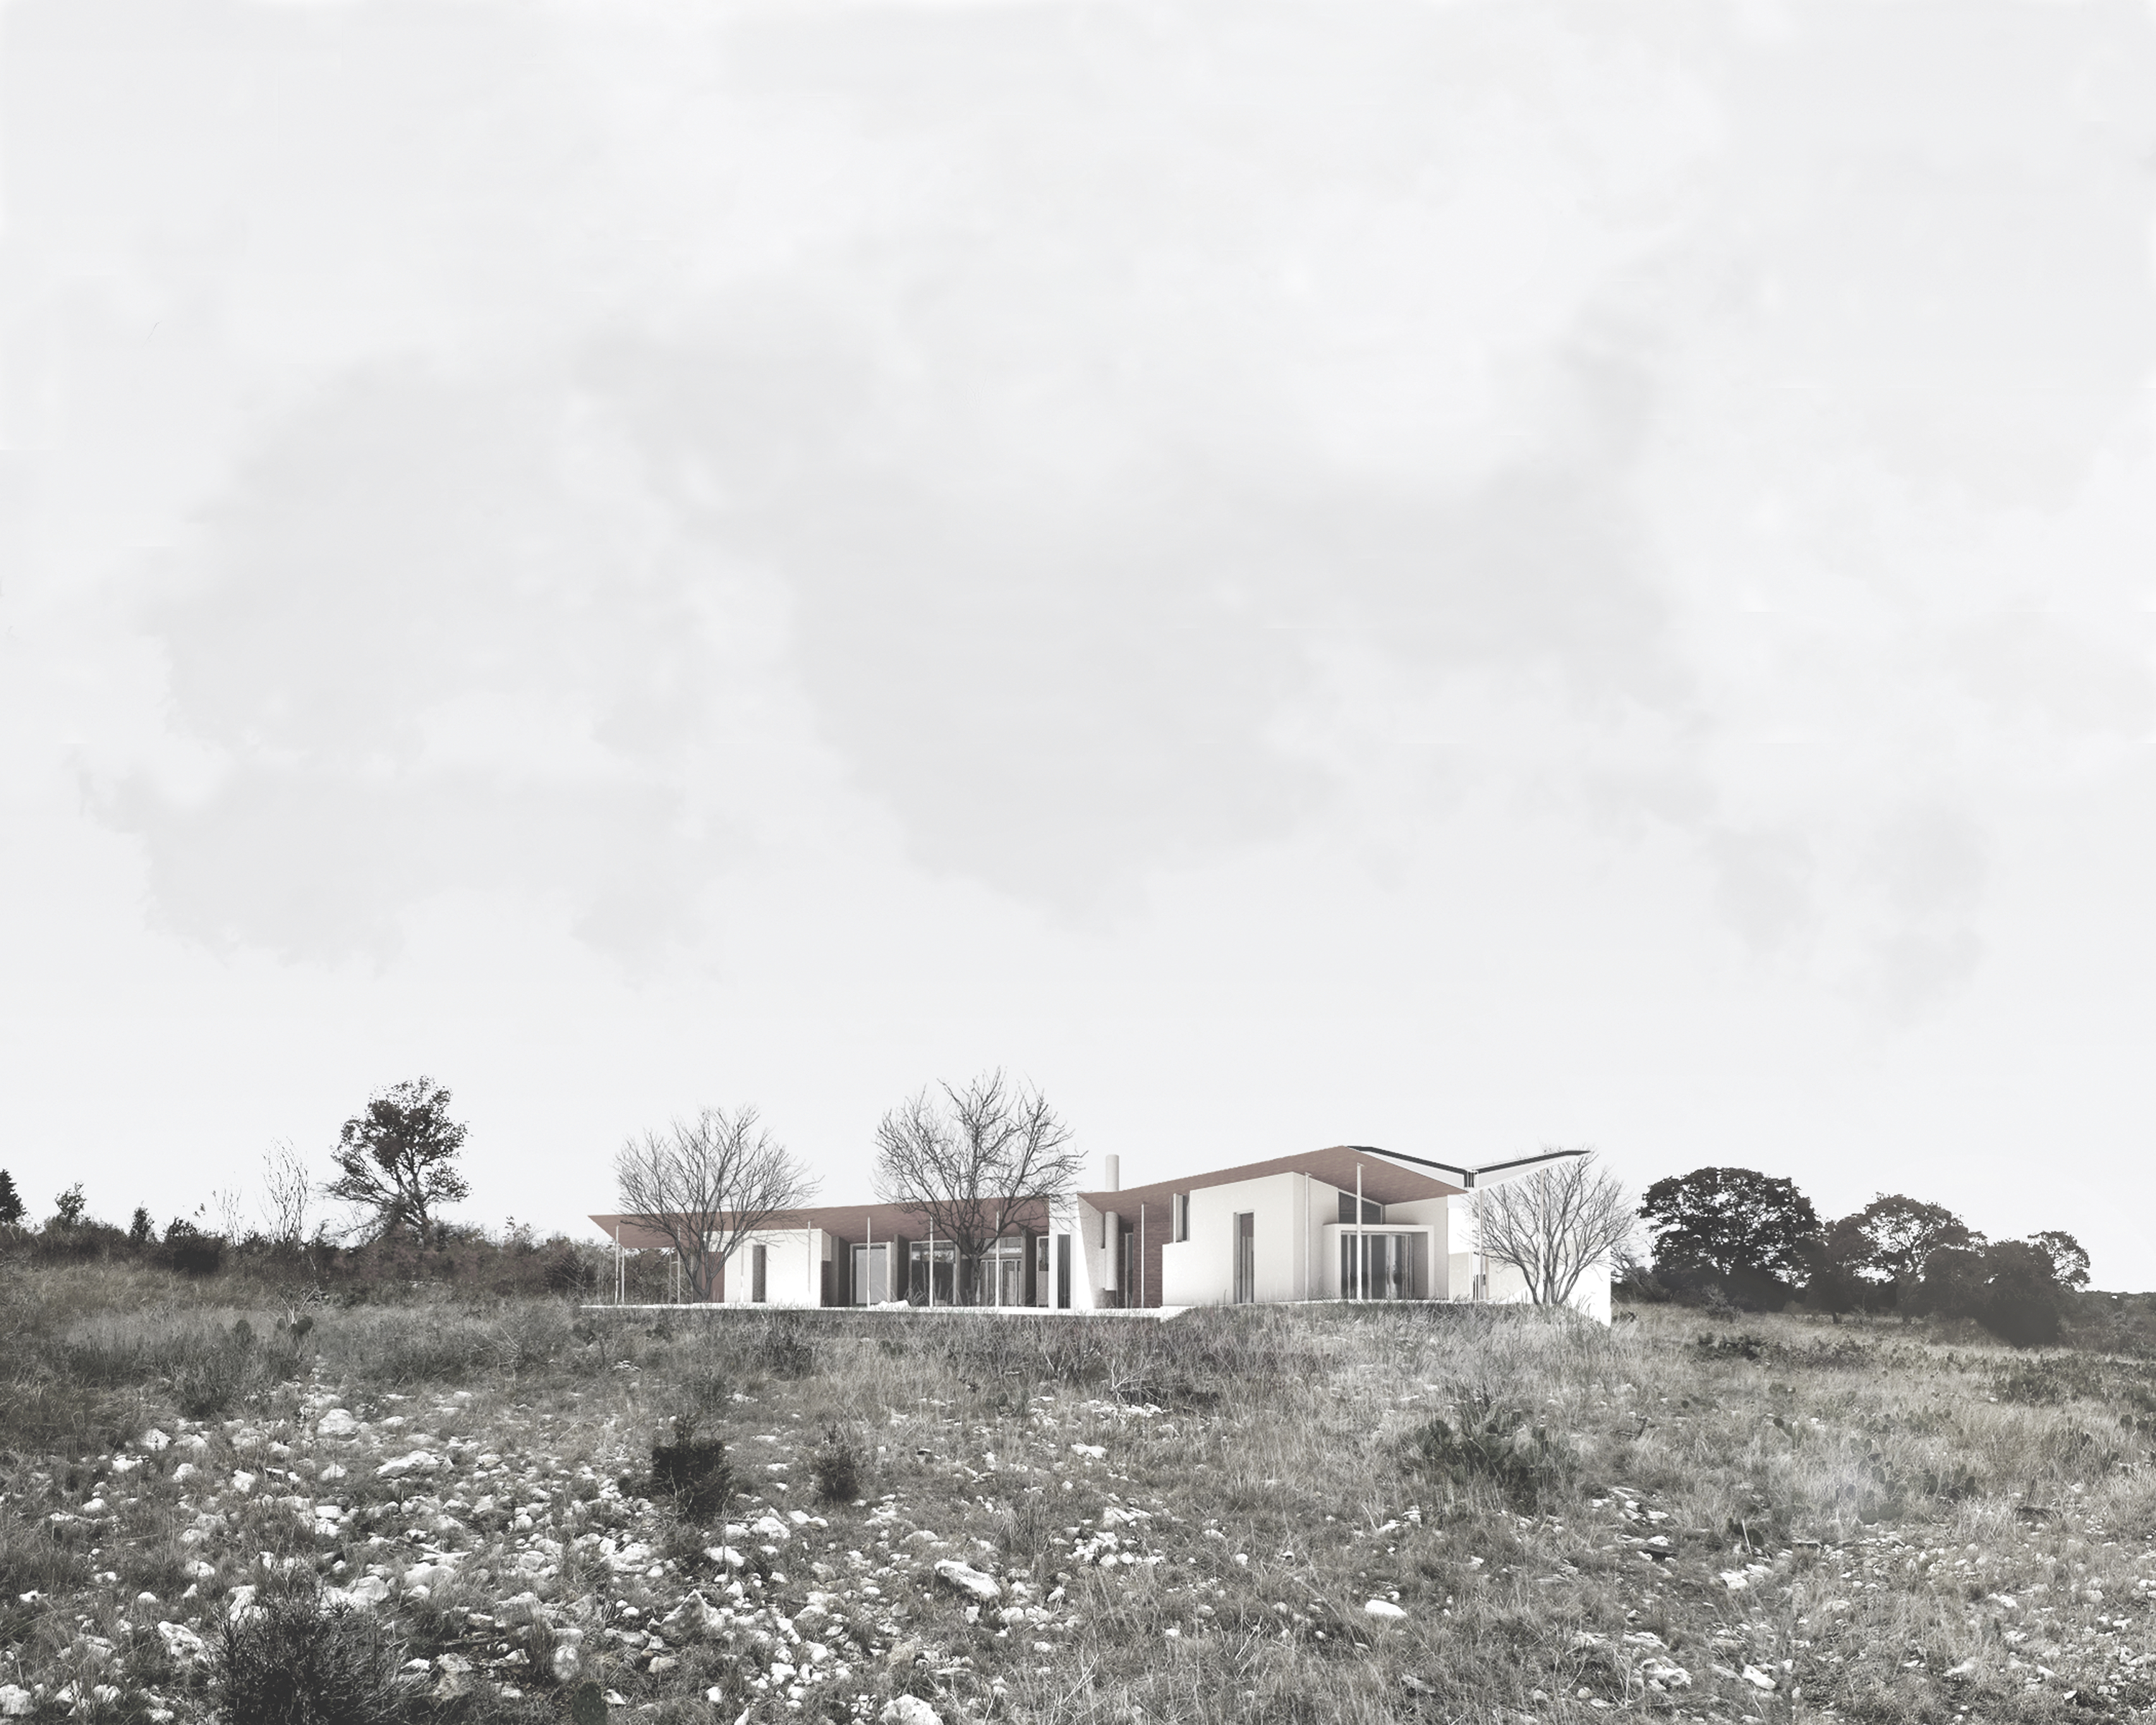 Sun/Wind House, Oatmeal, TX (unbuilt), 2013